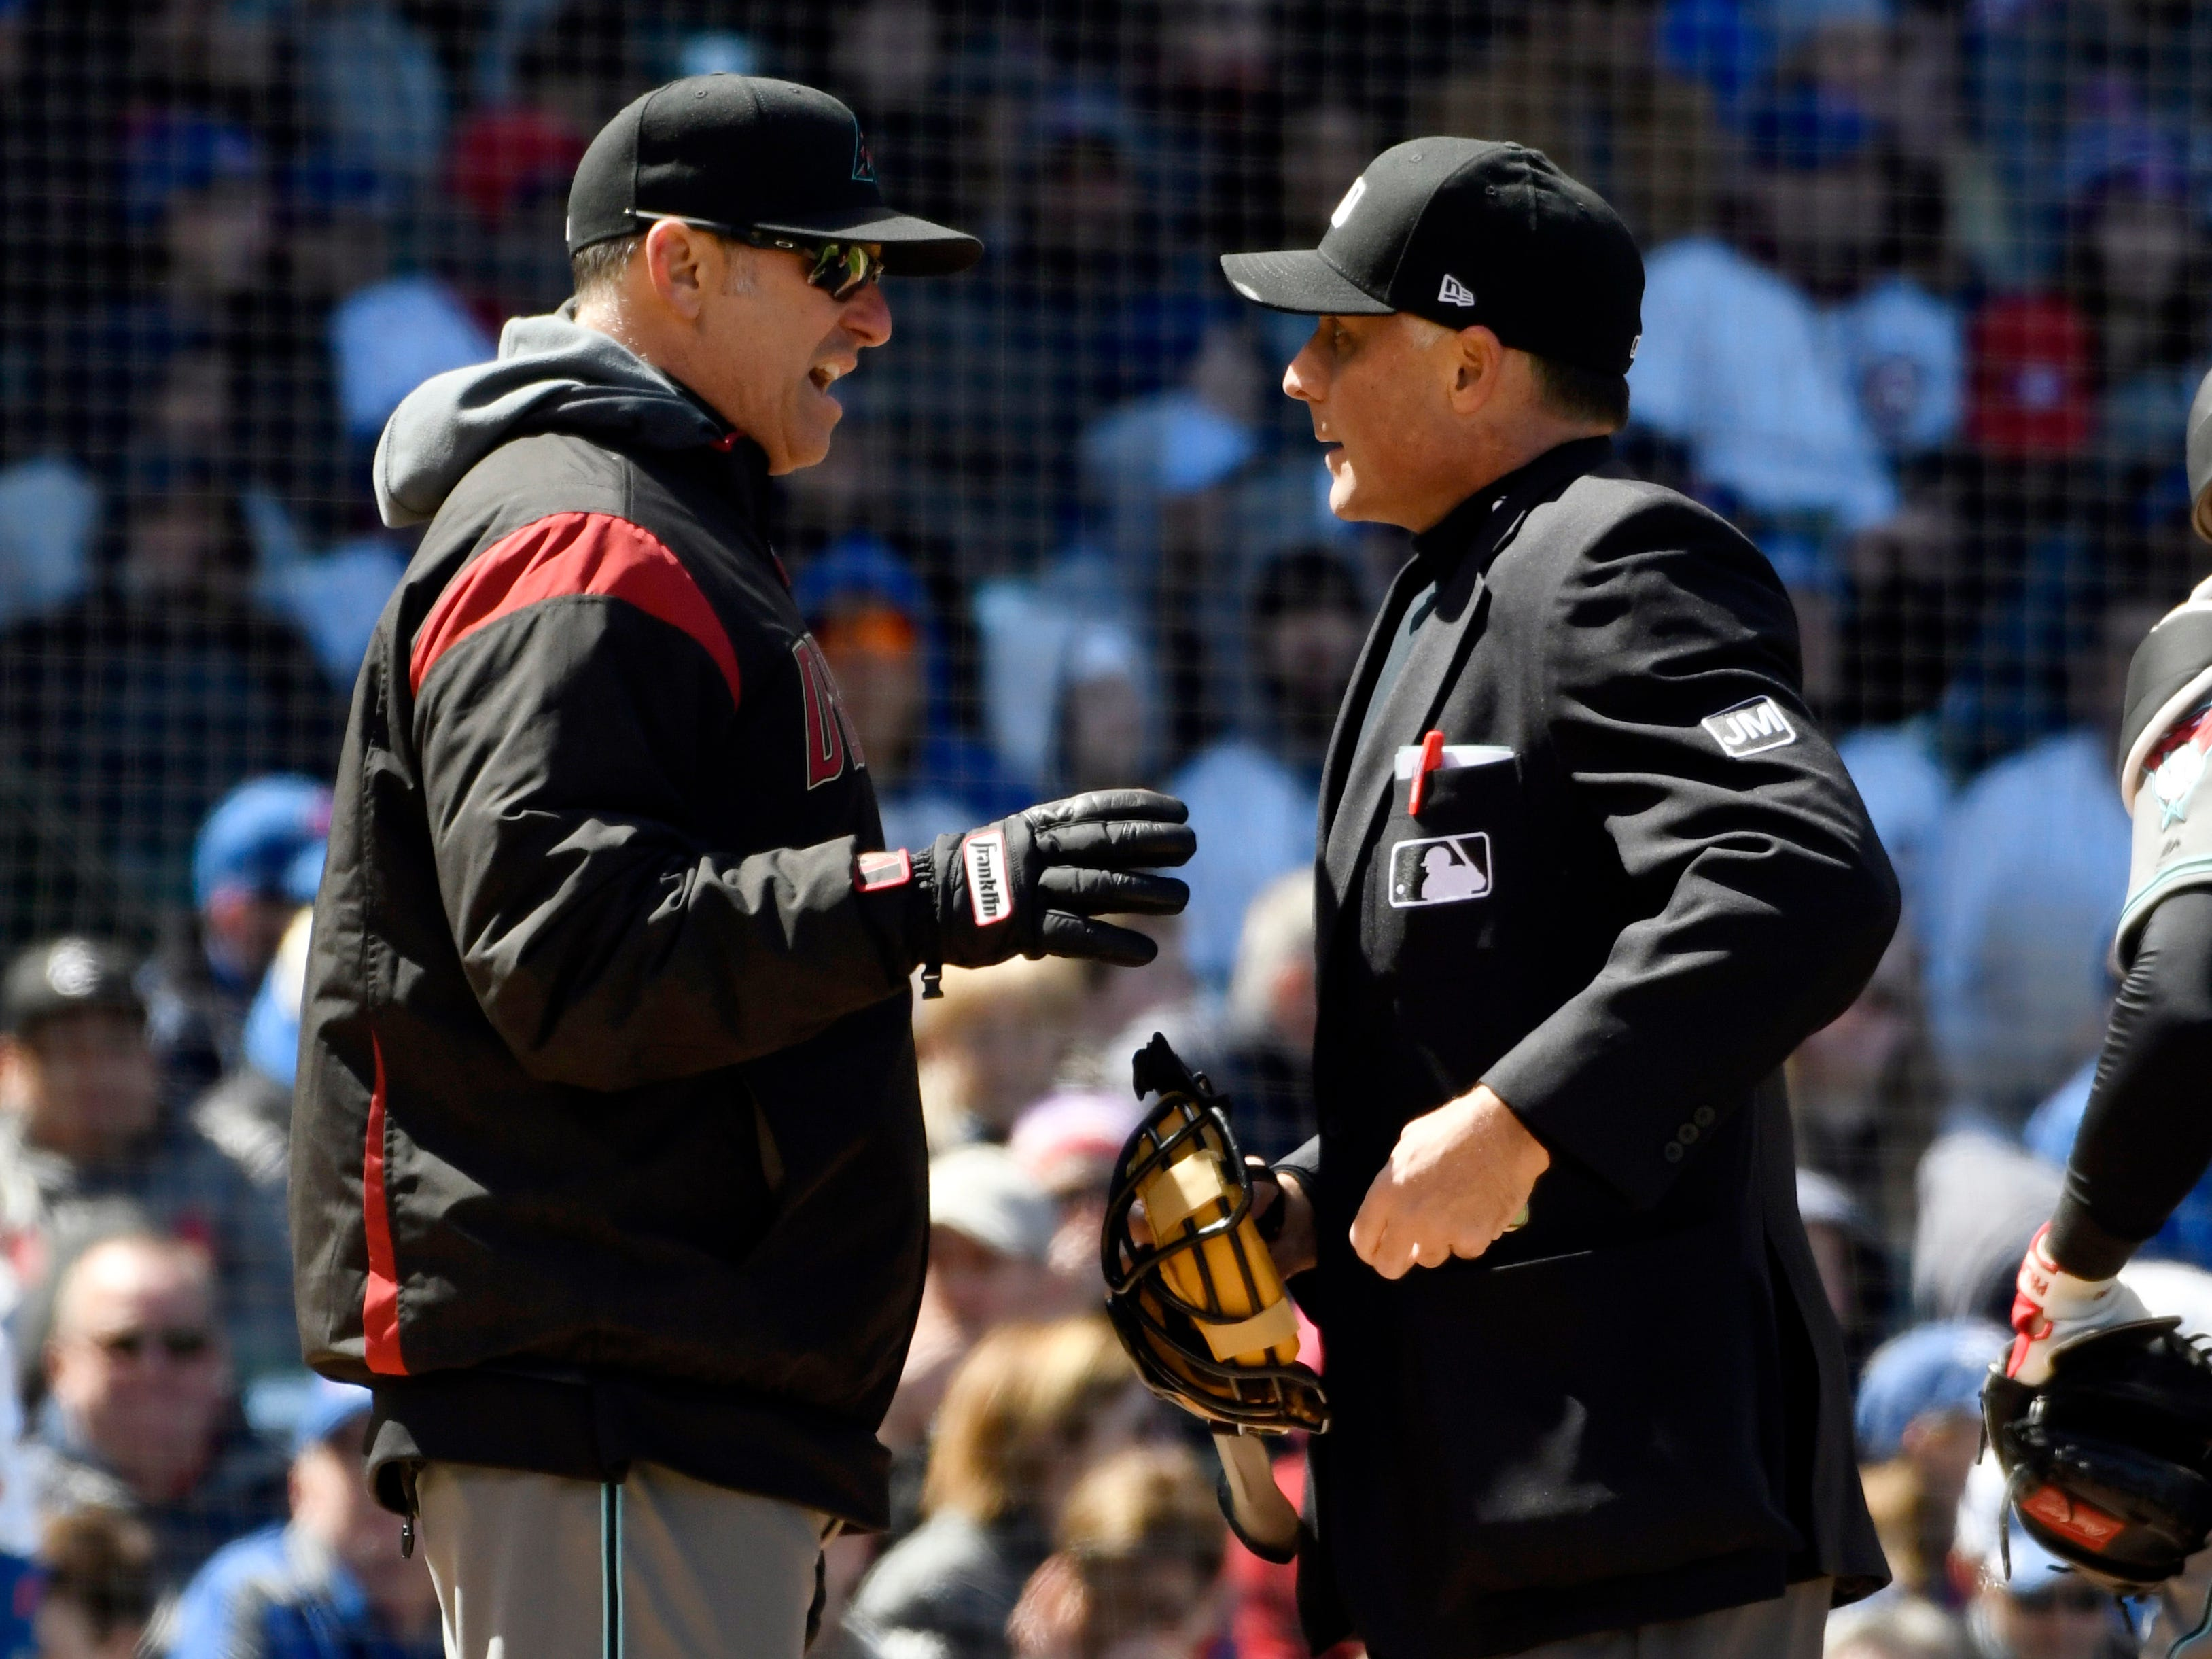 Arizona Diamondbacks' manager Torey Lovullo, left, questions a call with umpire Dan Iassogna (58) during the second inning of a baseball game against the Chicago Cubs, Friday, April 19, 2019, in Chicago. (AP Photo/David Banks)